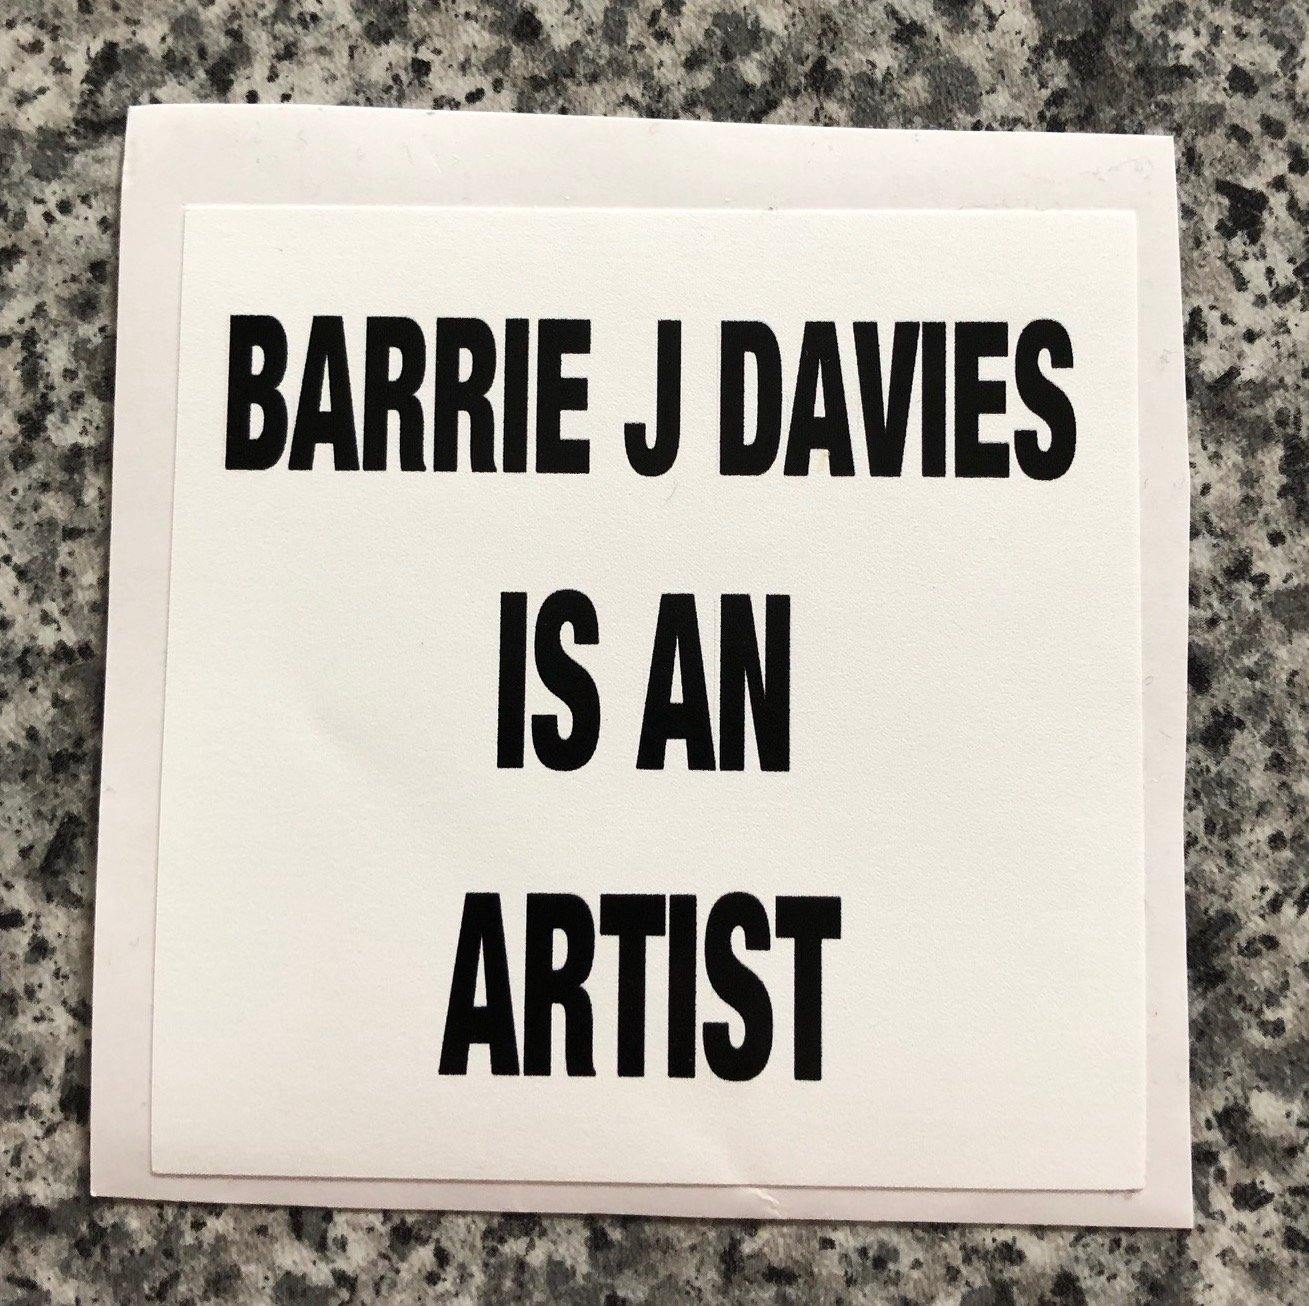 Limited edition street art sticker by the artist Barrie J Davies. 5cm x 5cm - you can stick it to stuff.